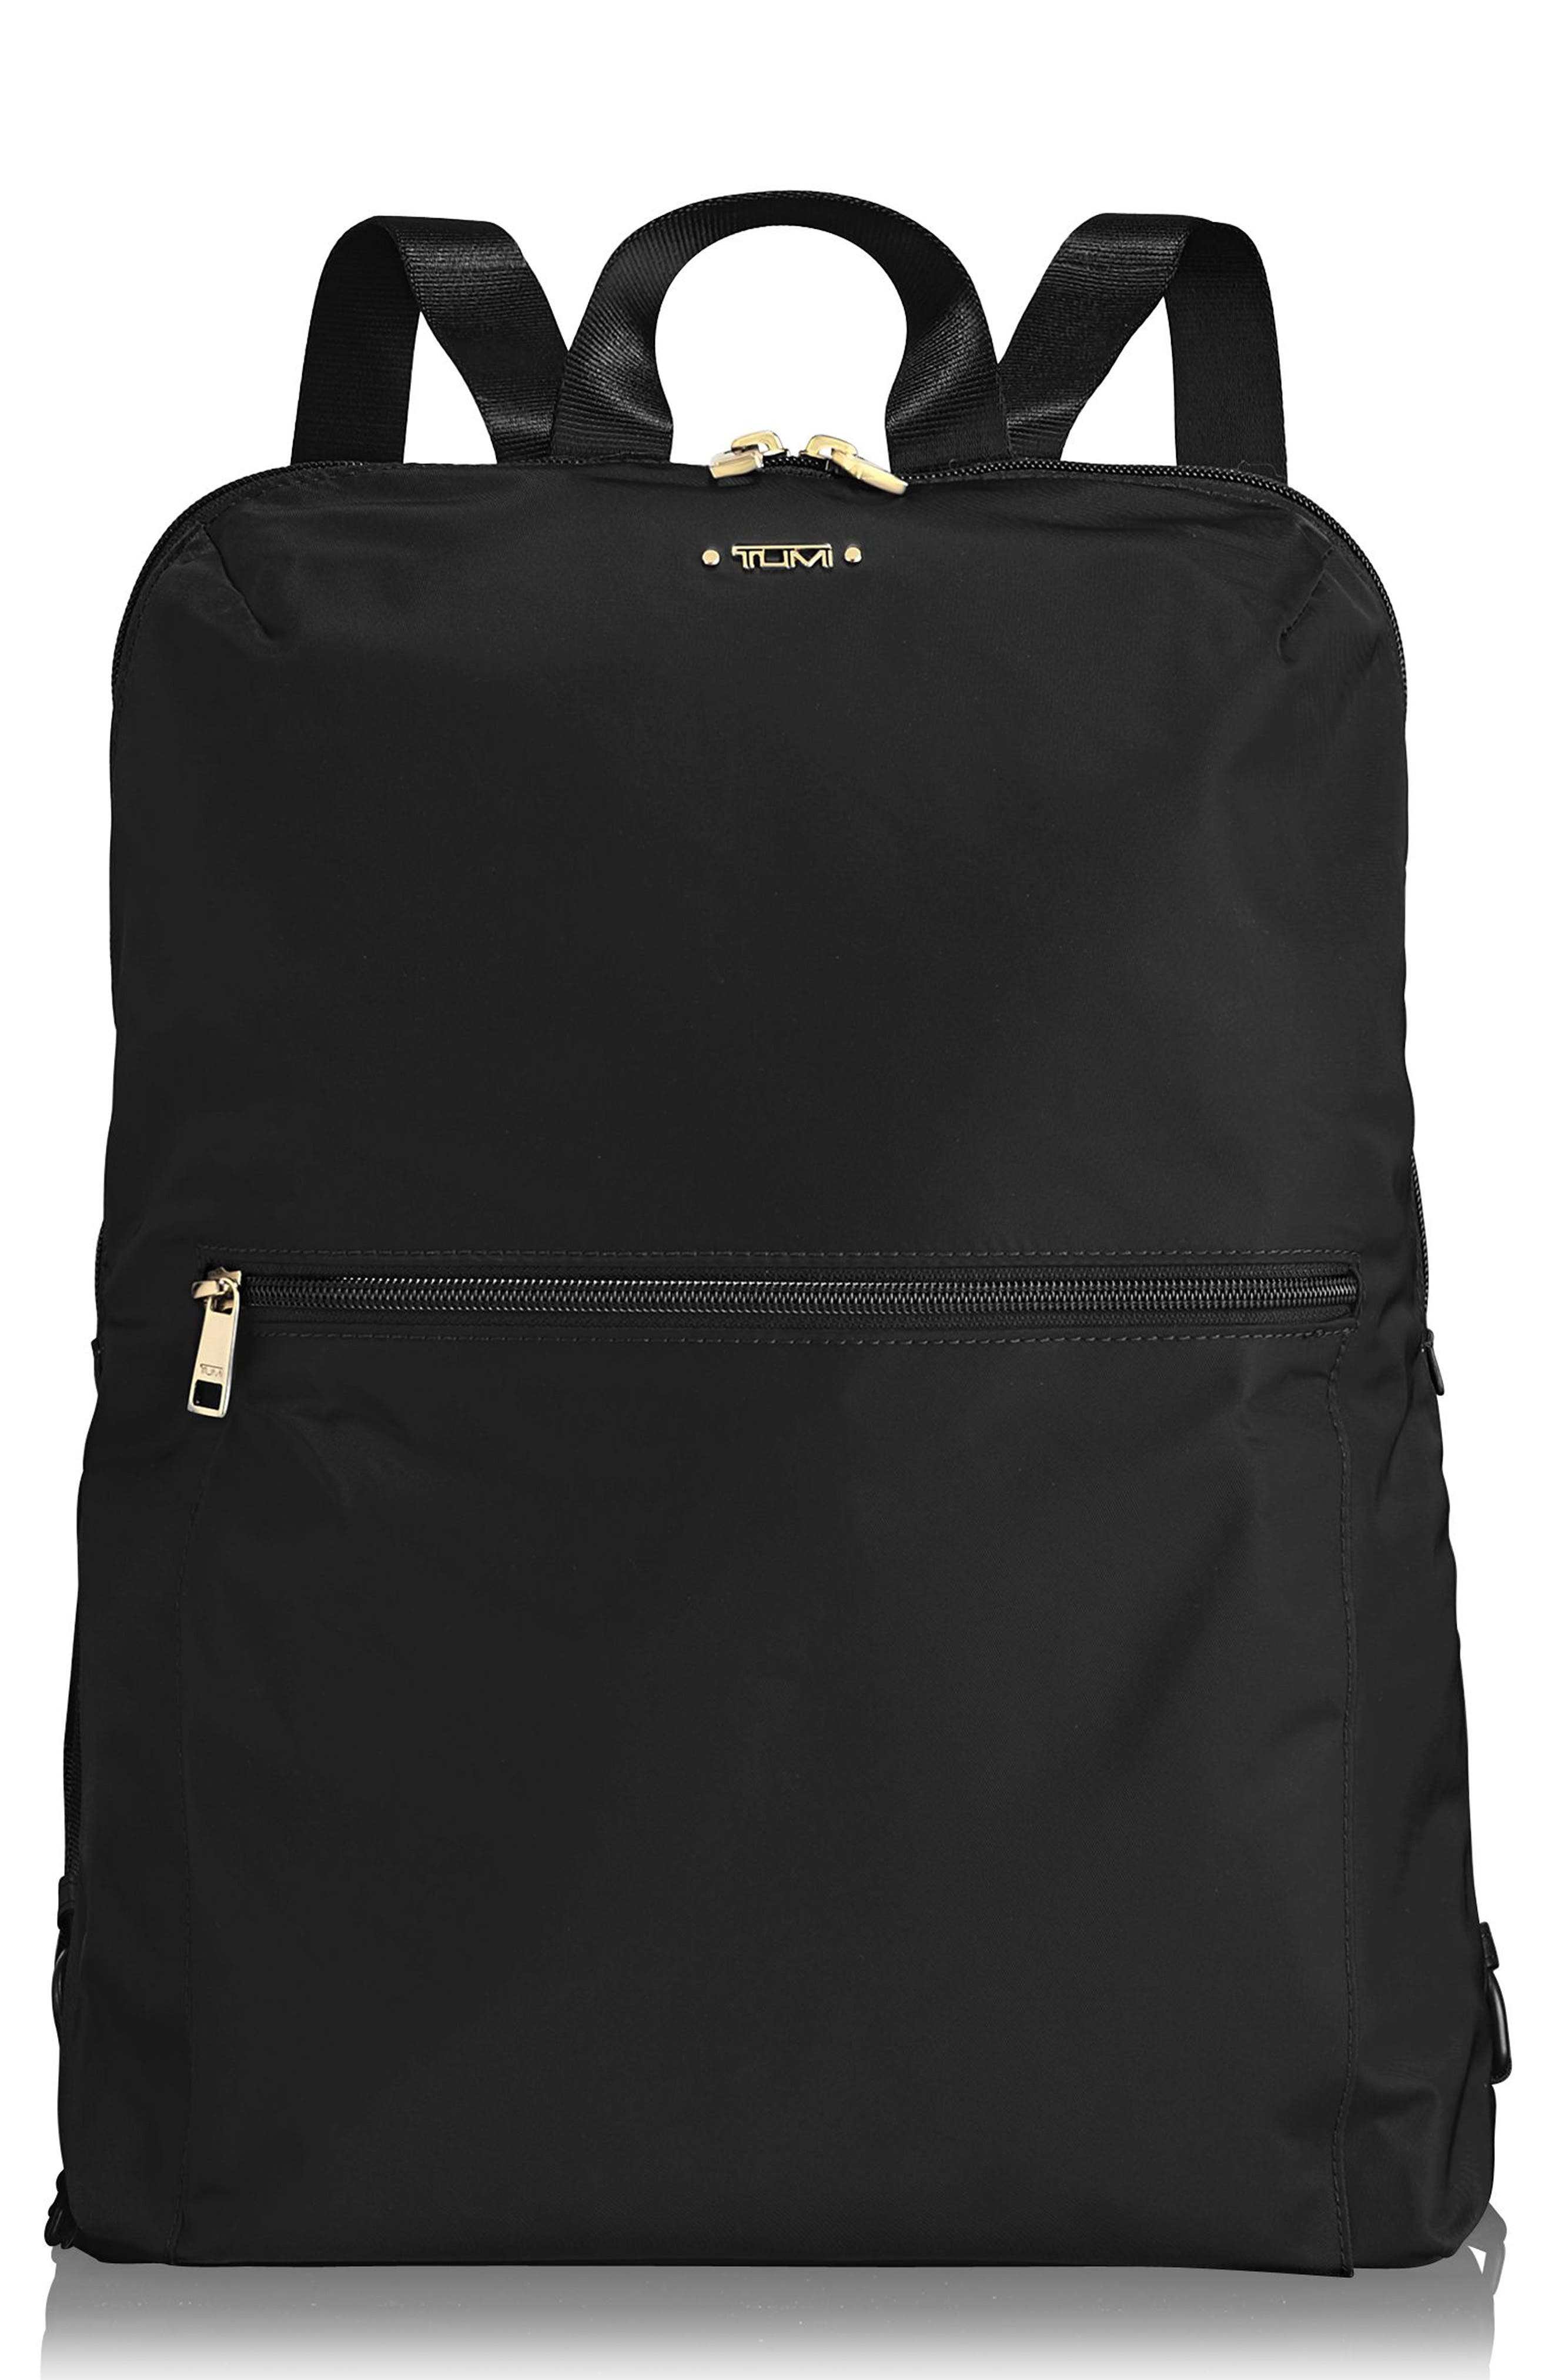 TUMI,                             Voyageur - Just in Case Nylon Travel Backpack,                             Main thumbnail 1, color,                             001